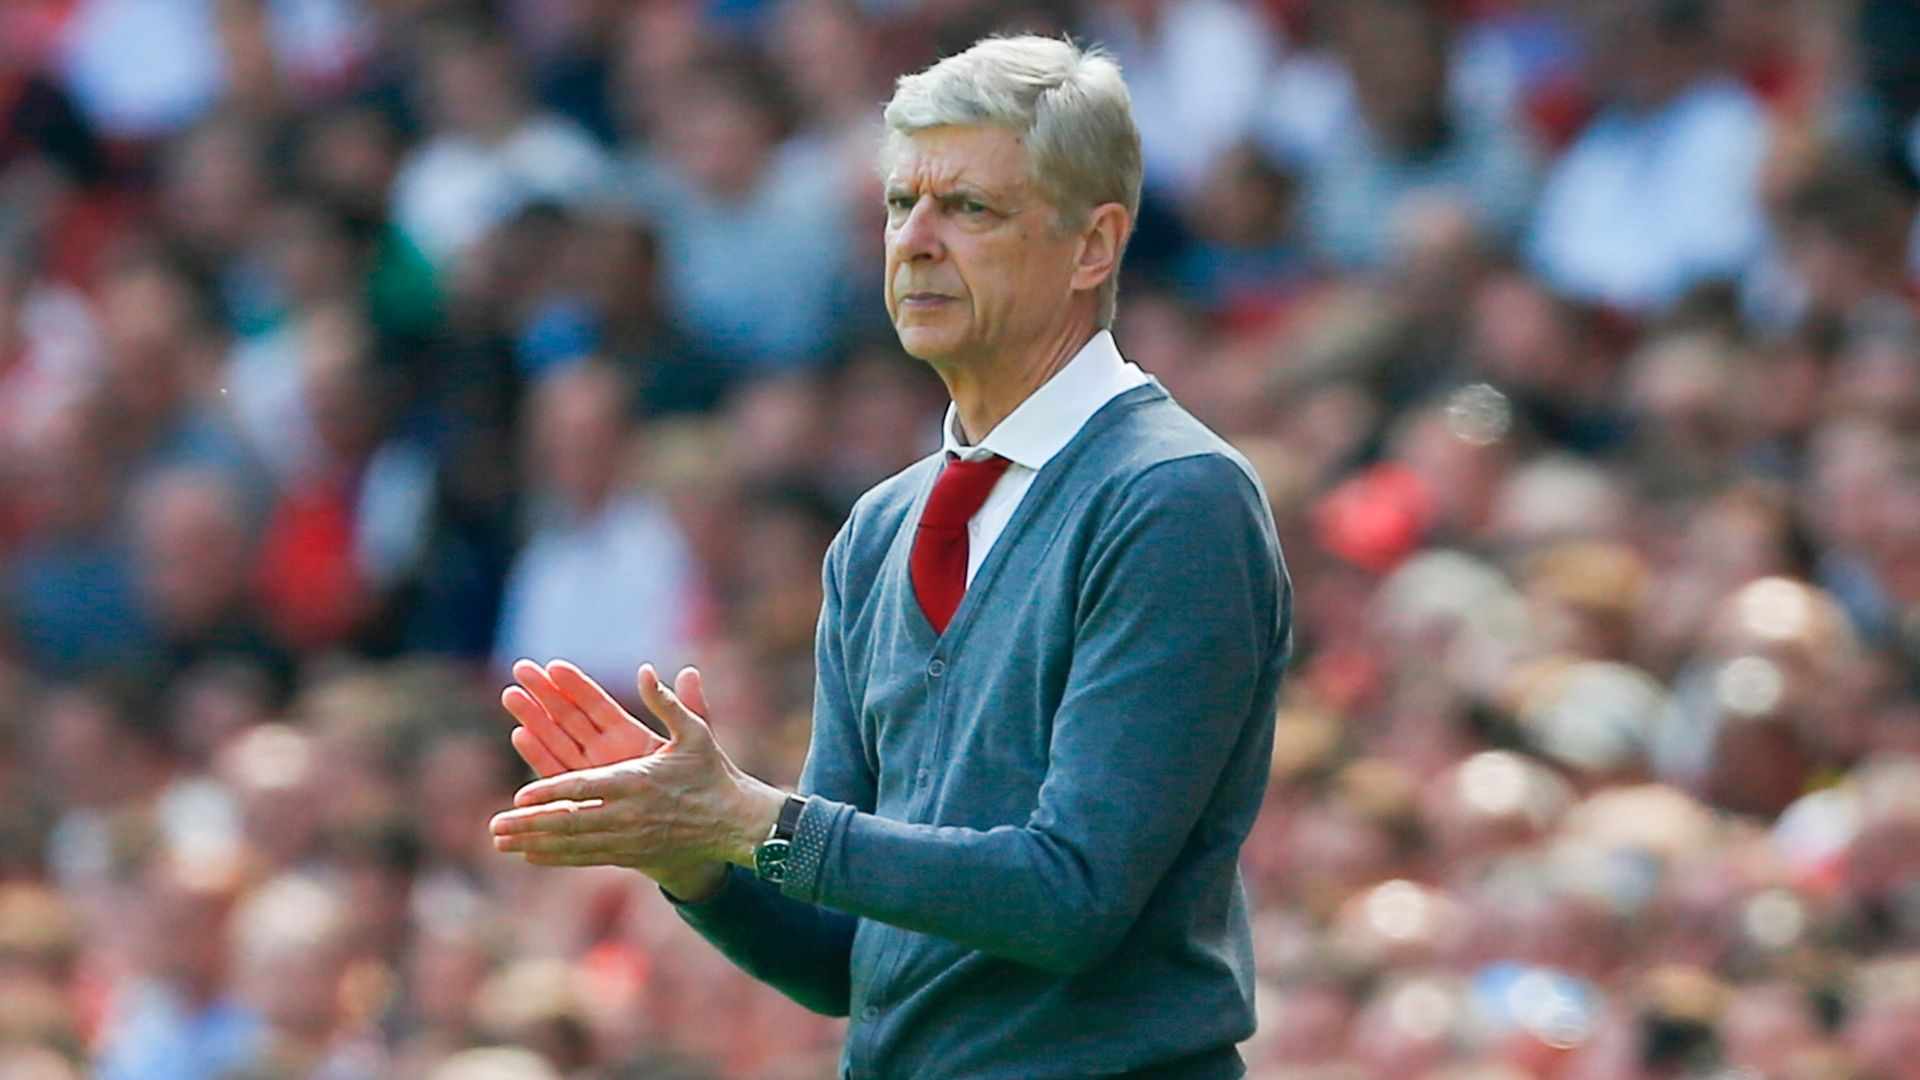 Wenger's successor boosted by awesome attack